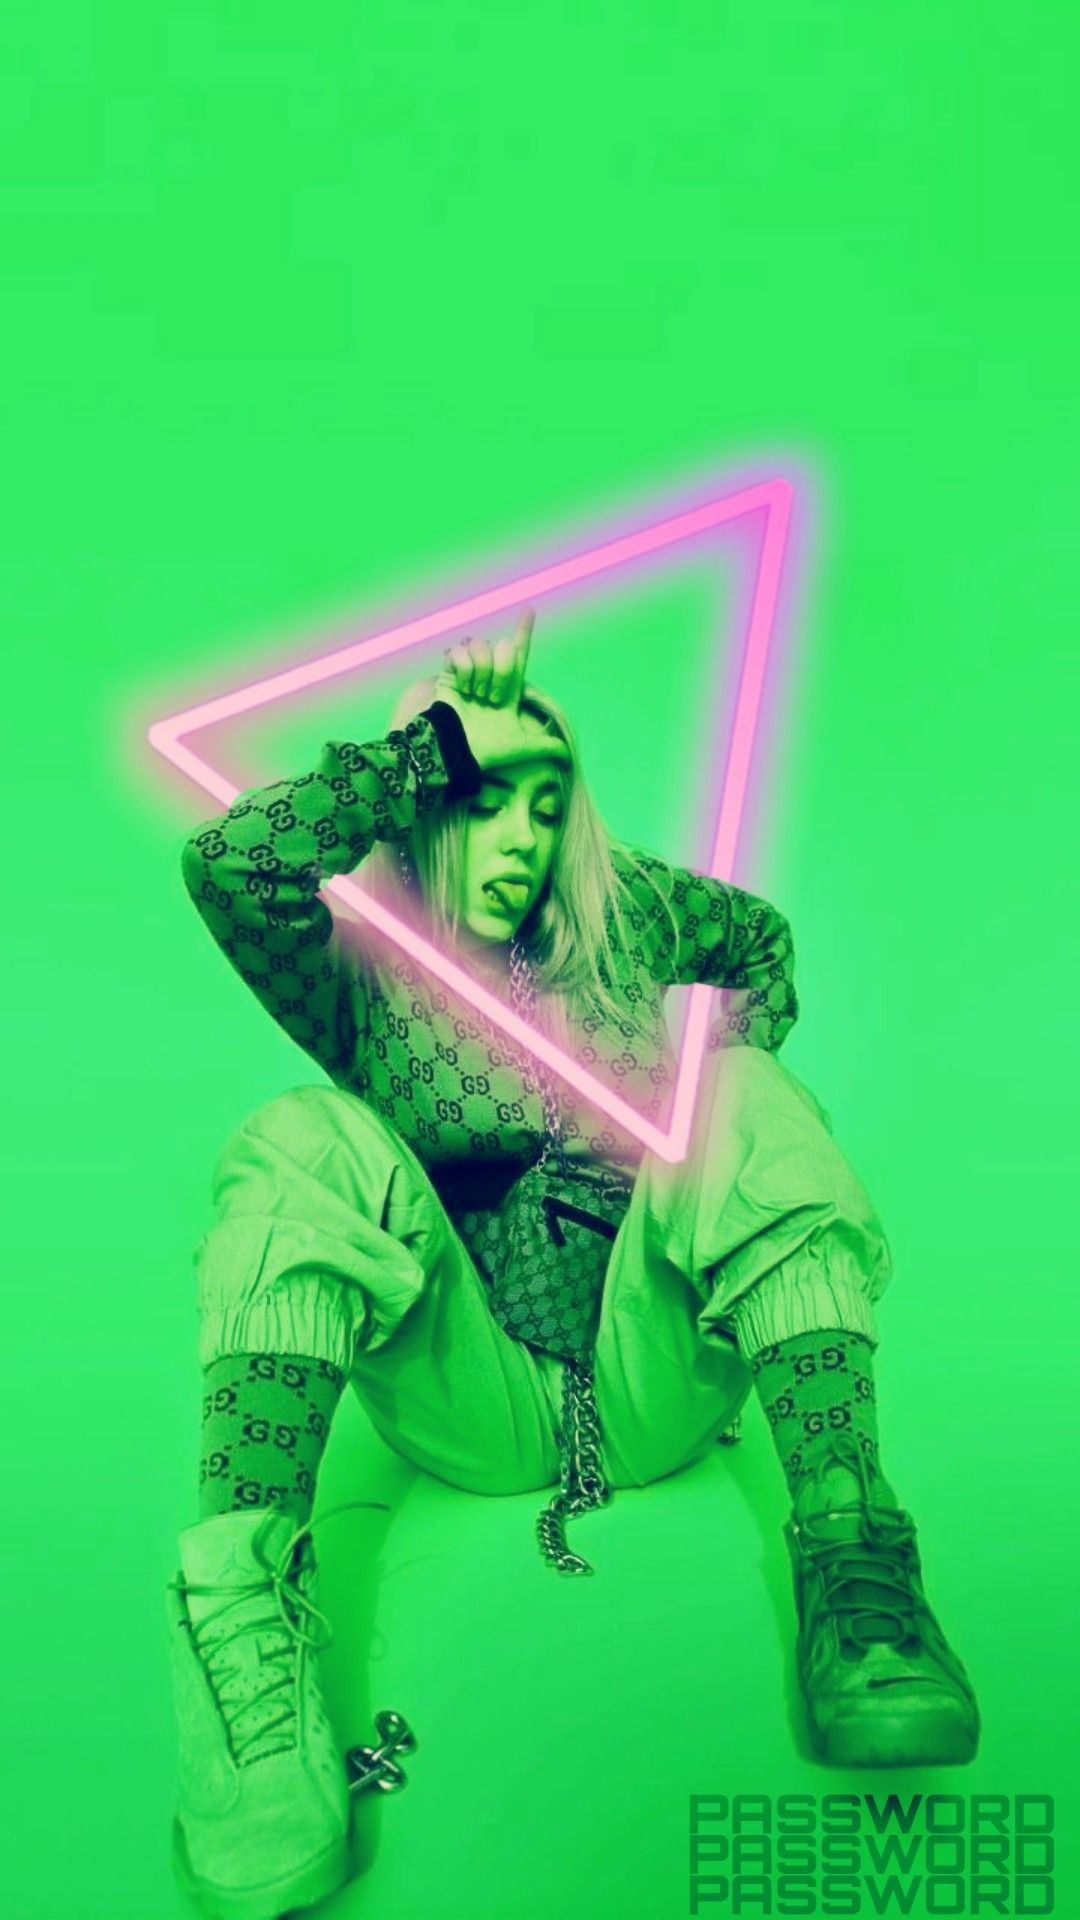 Billie Eilish Wallpaper Aesthetic Billie Eilish Style Billie Eilish Yellow Billie Eilish Hot Billie Eilish Ly Billie Eilish Neon Aesthetic Billie